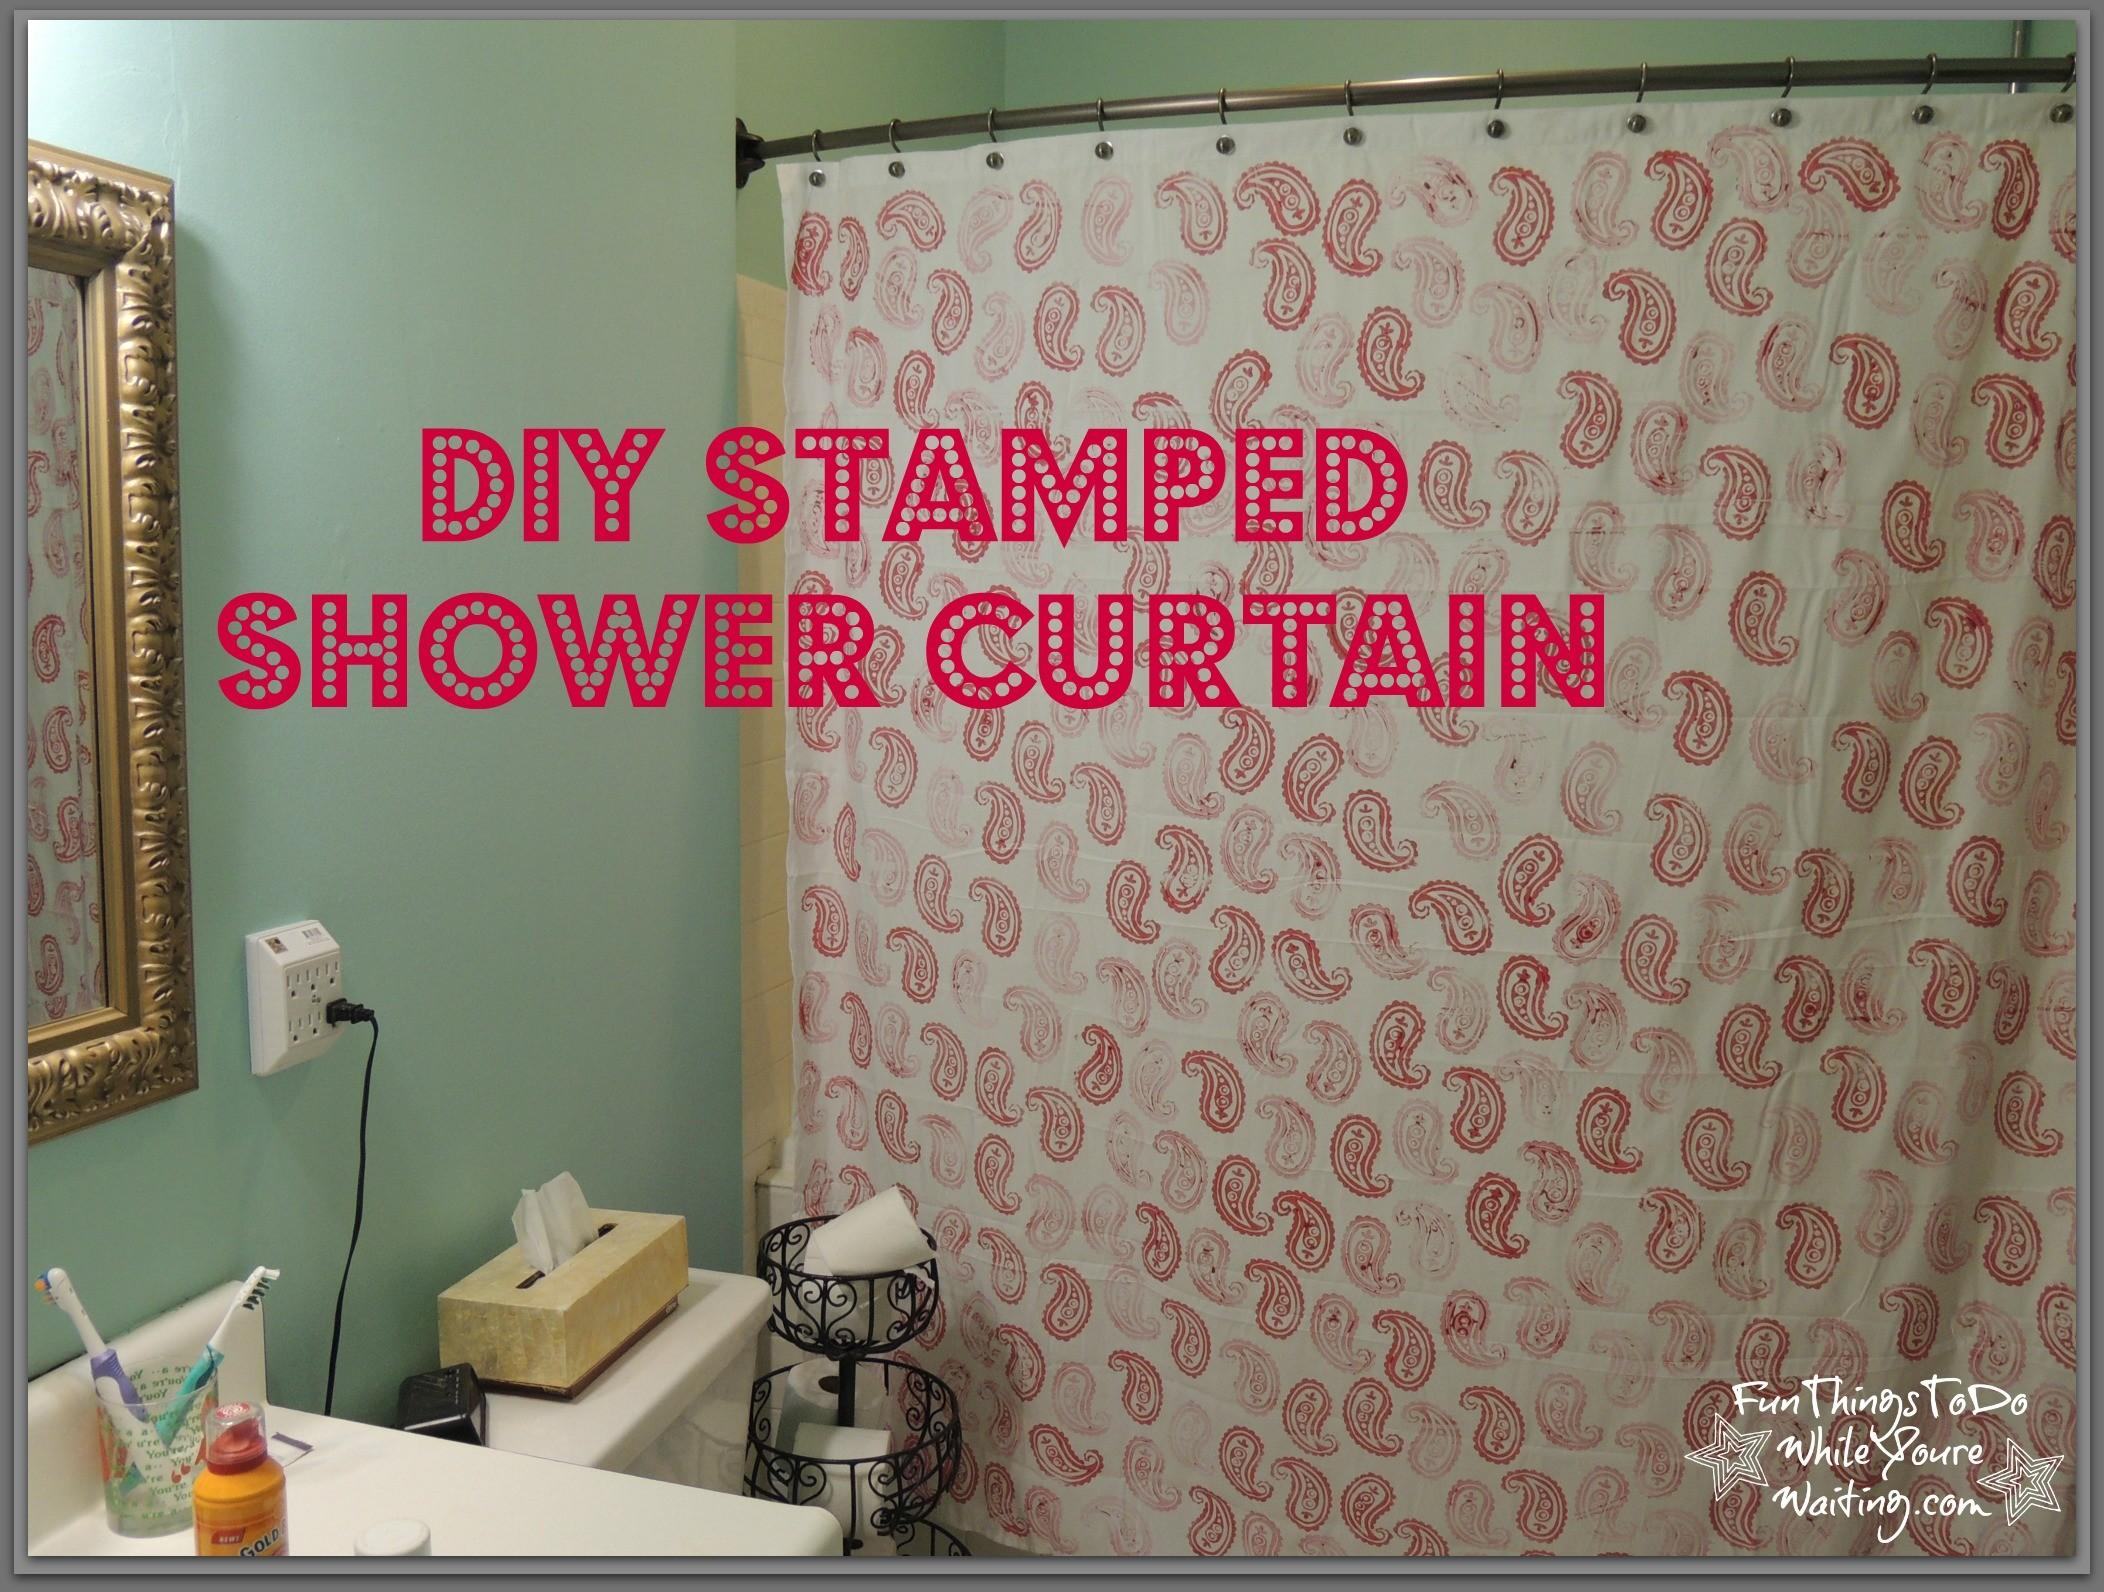 Diy Stamped Shower Curtain Fun Things While